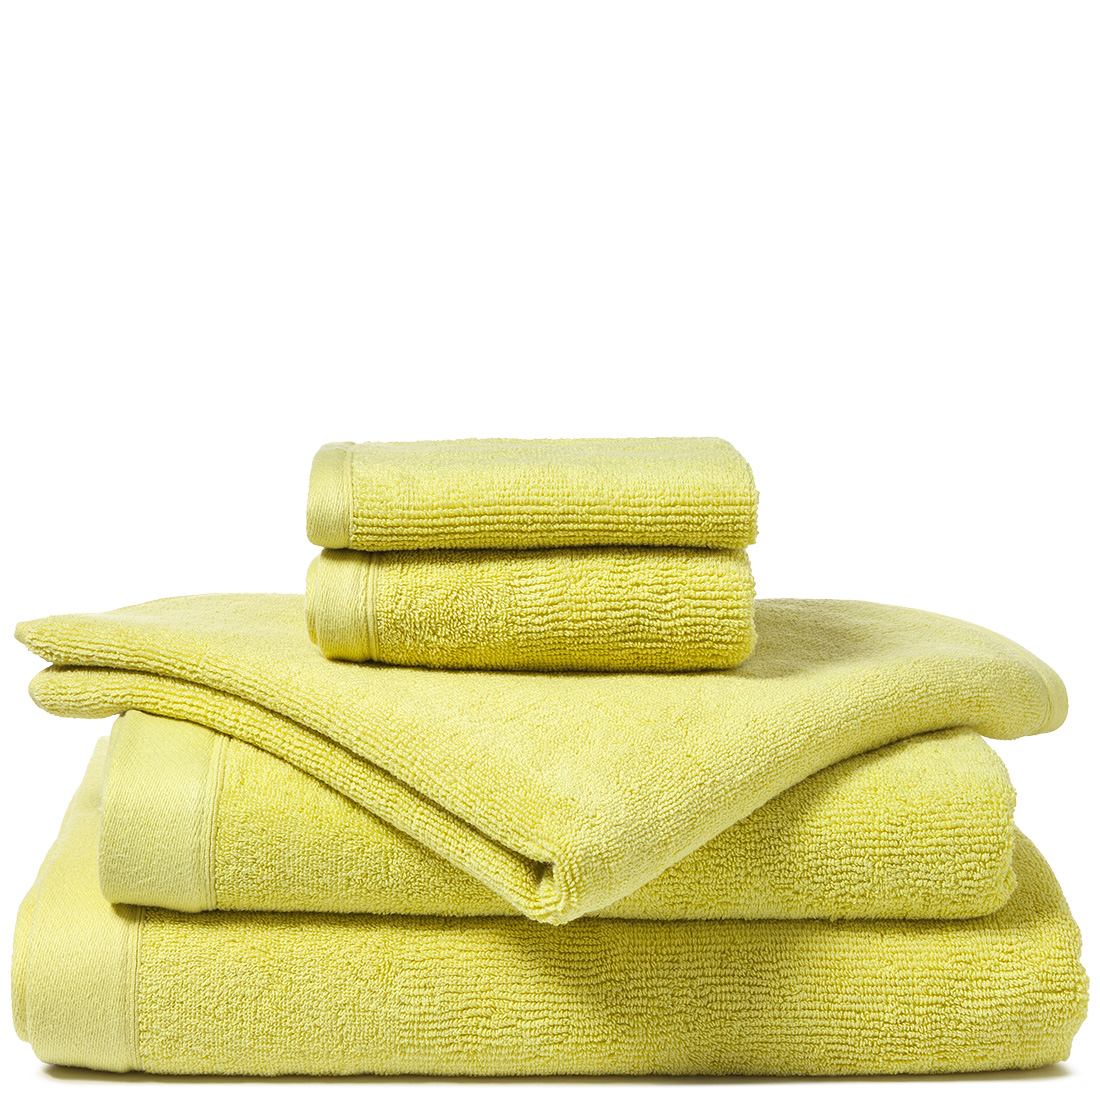 Corduroy Rib Bath Towel Range Clearance Colours Ebay